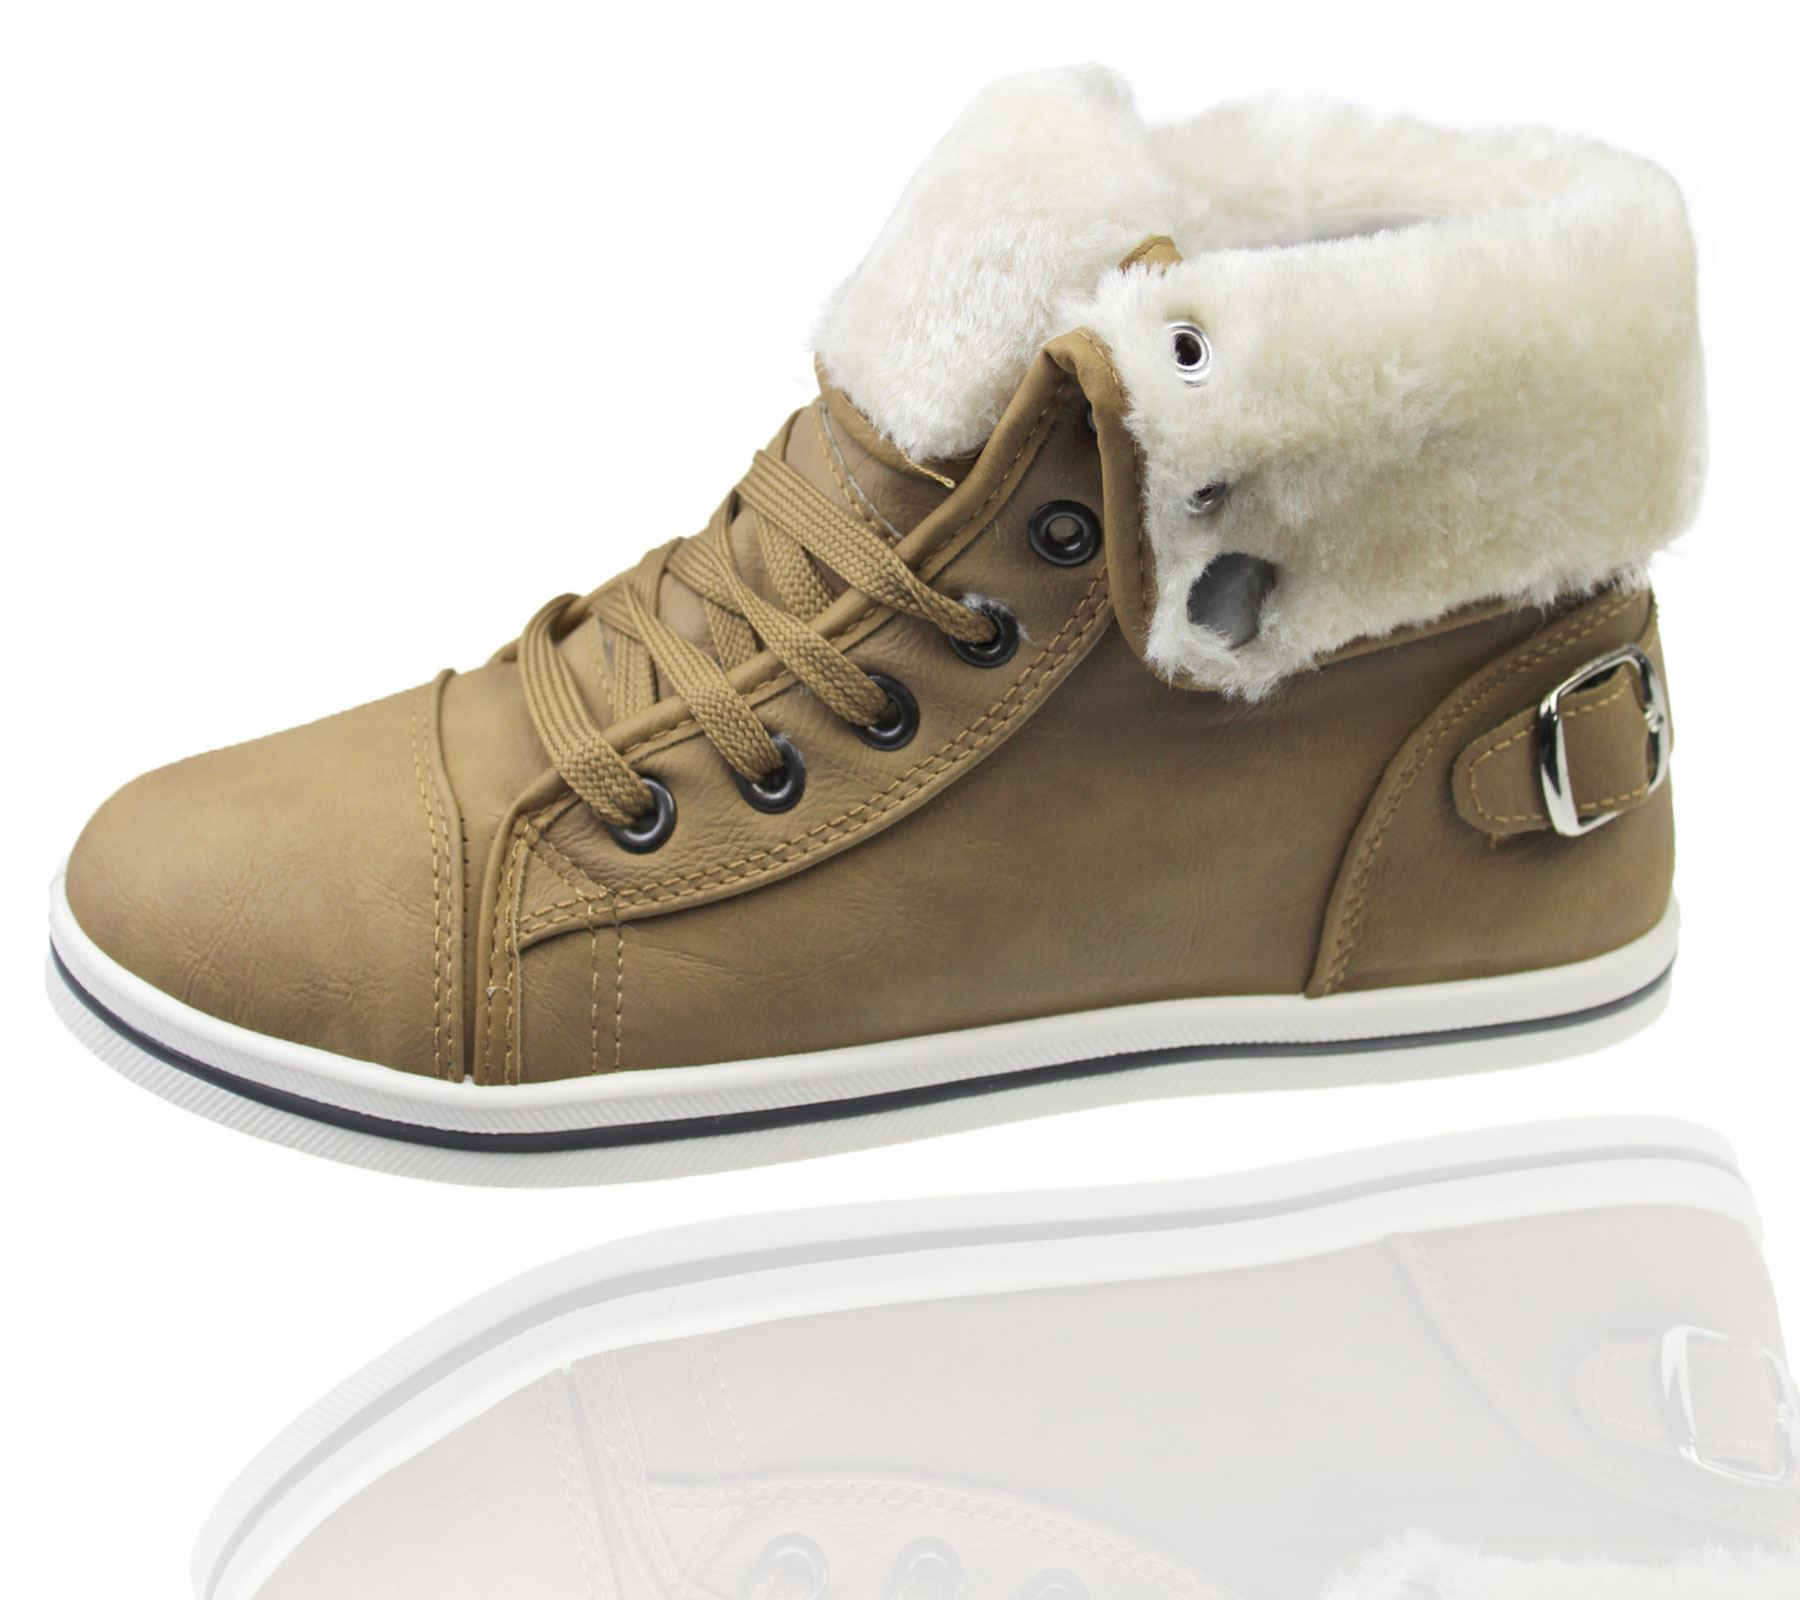 Girls-Boots-Womens-Warm-Lined-High-Top-Ankle-Trainer-Ladies-Winter-Shoes-Size miniatura 108